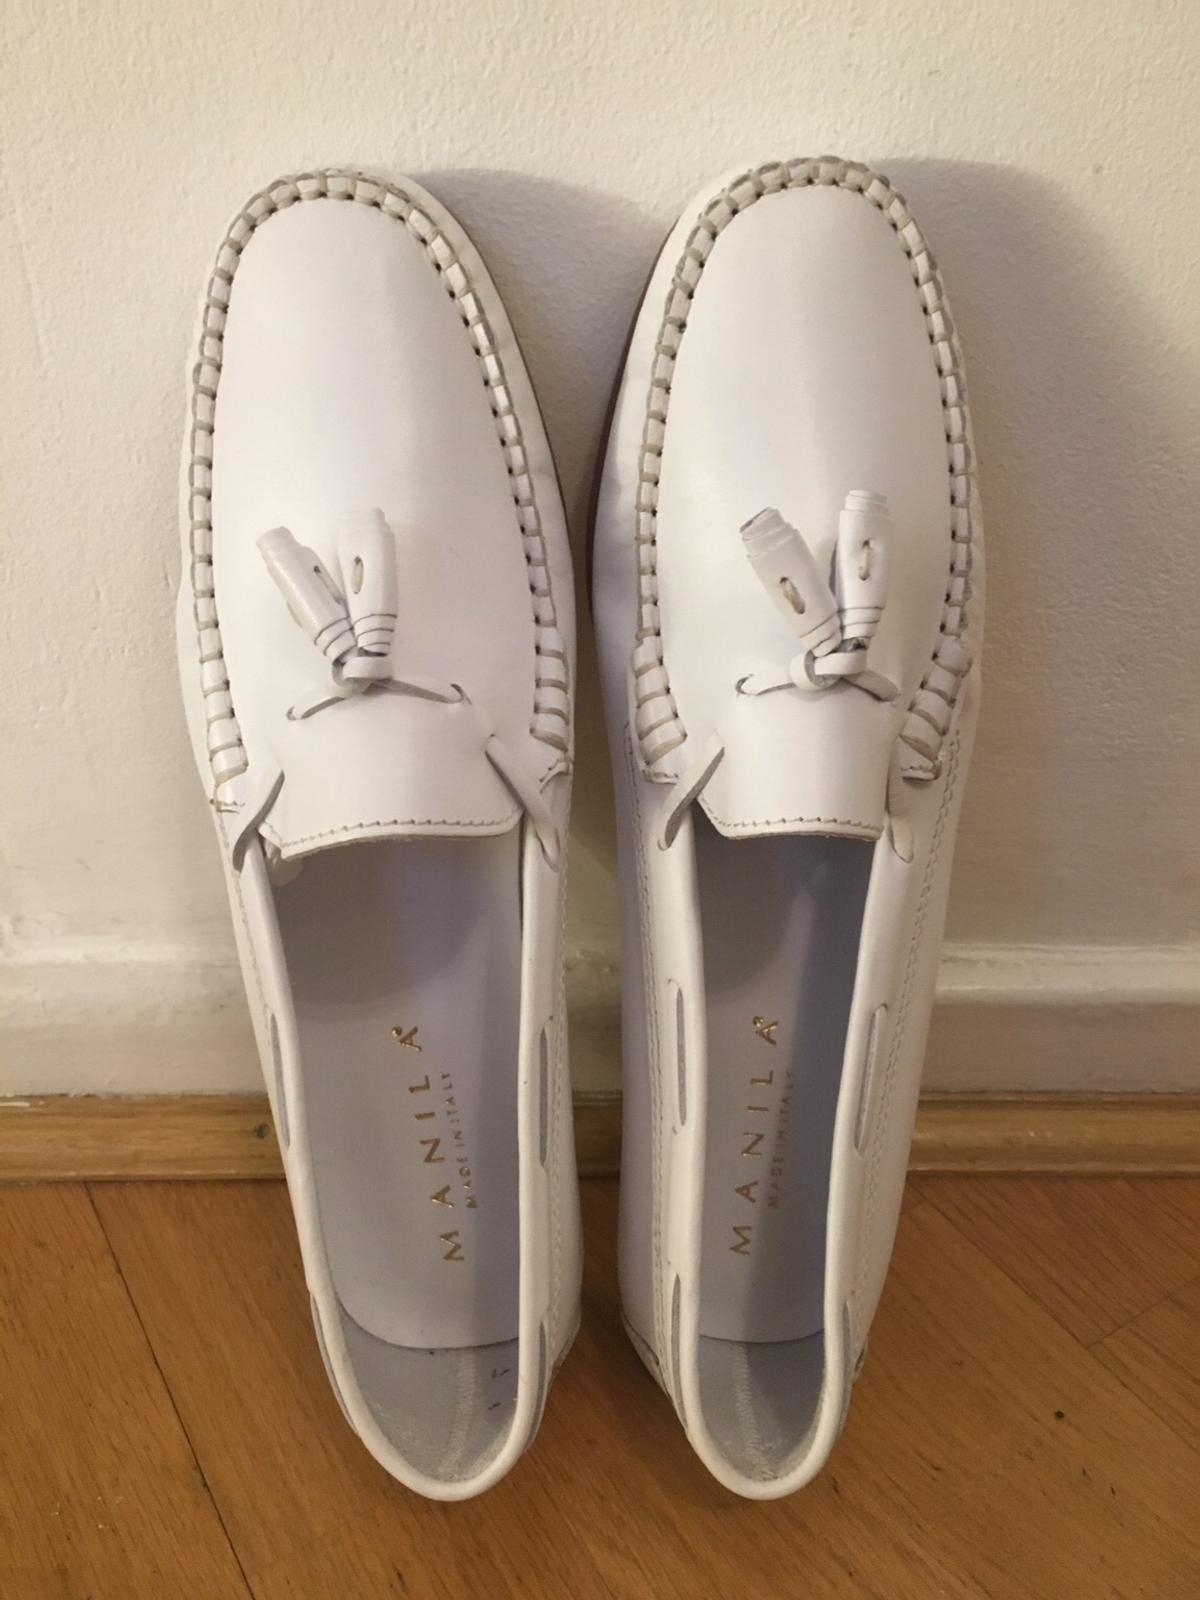 Clerkenwell, Holborn area, London  1. Manila White size 40 4. Manila Oatmeal size 40  Made in Italy Wore once, almost brand new as you see.  £80 each